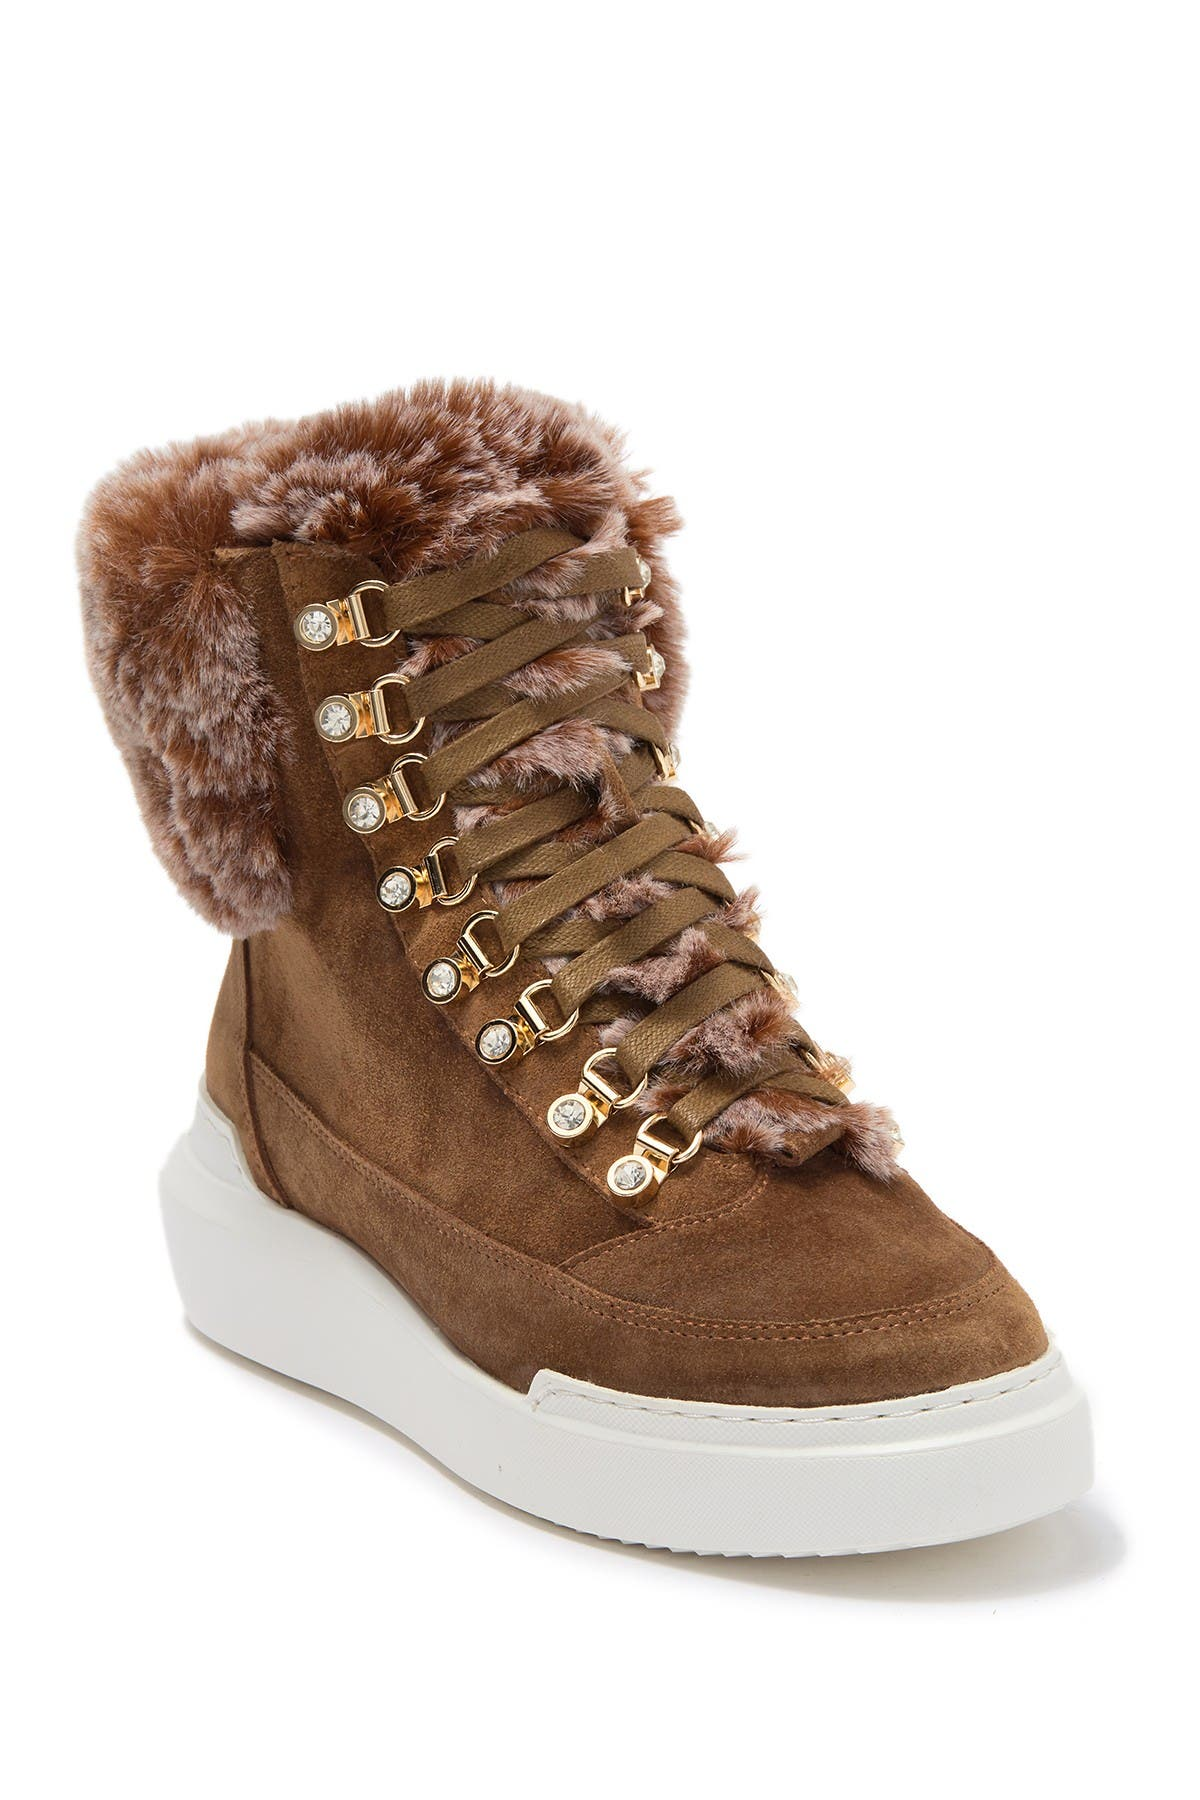 vince camuto high top sneakers